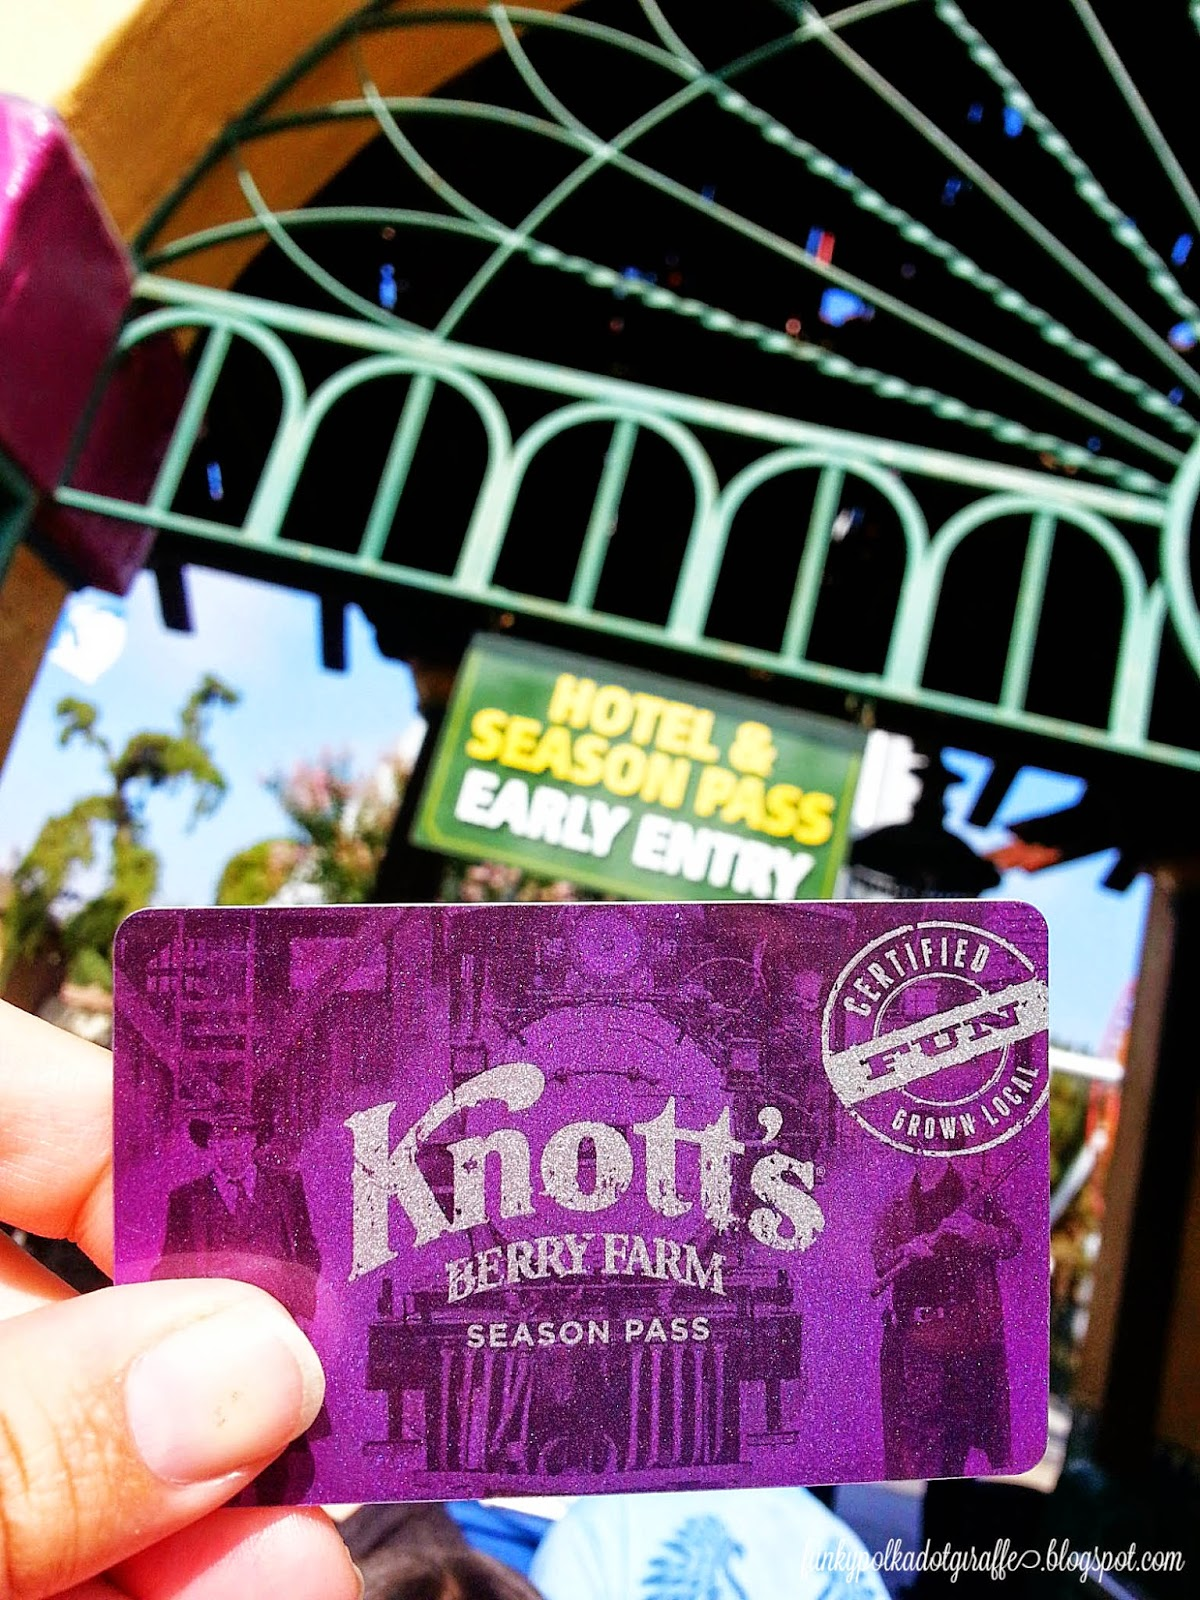 Knott's passes and add-ons go on sale today, Aug. 16, and may be purchased at the park or online at counbobsbucop.tk at the prices listed through Oct. 28, when prices will go up. Payment plans are.